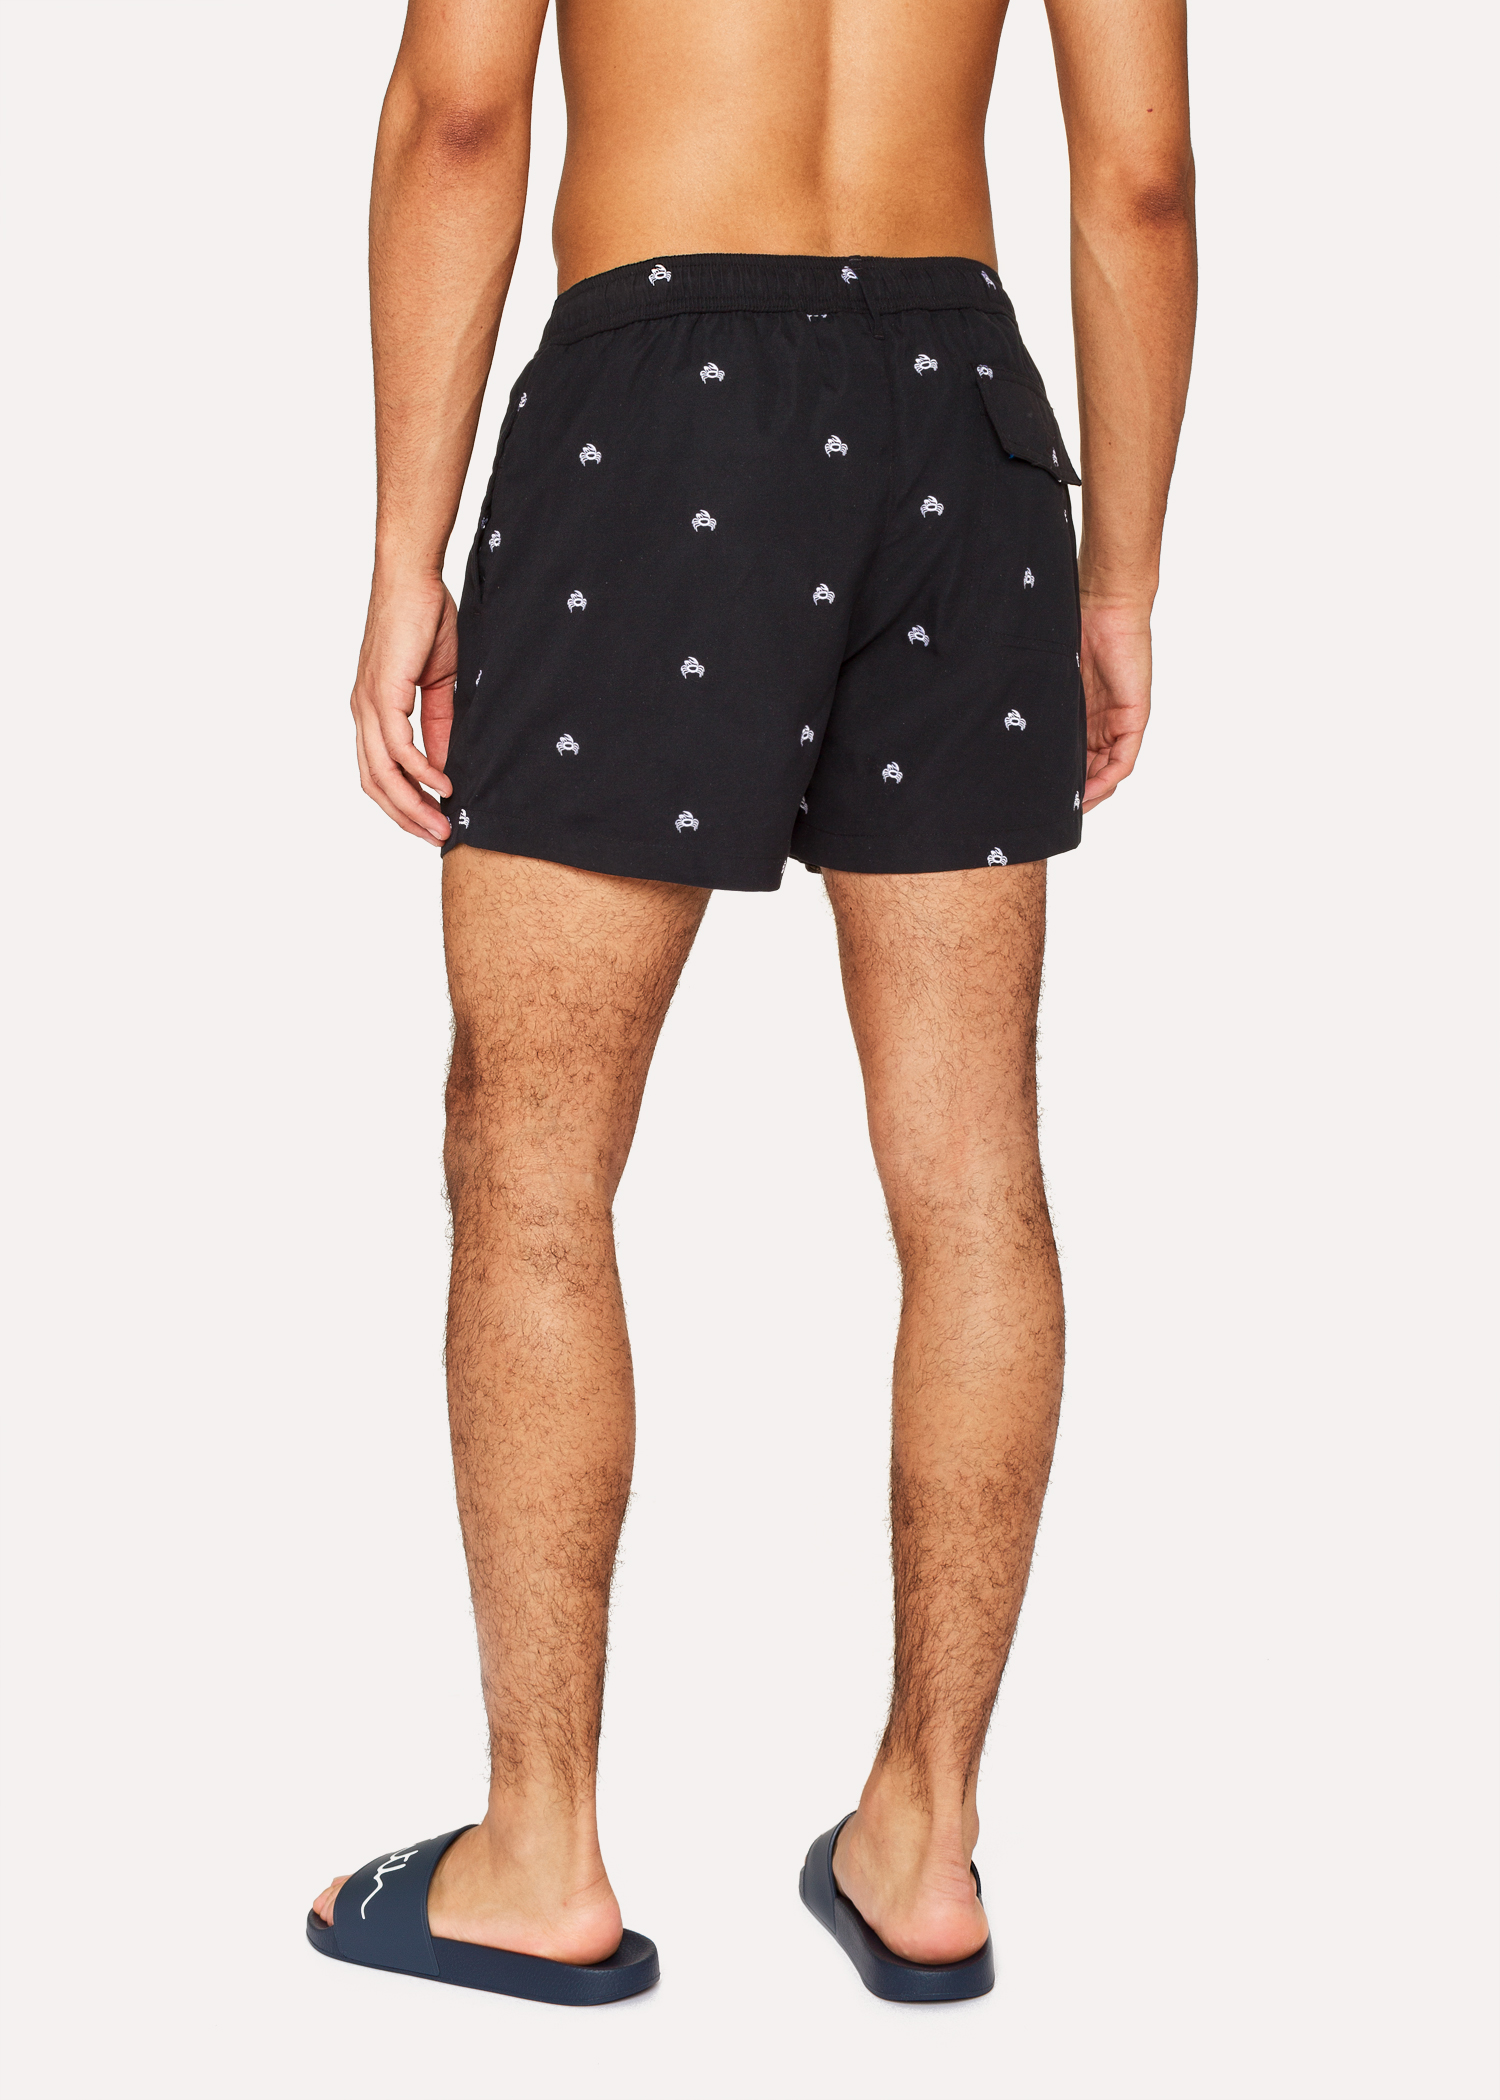 ae2d101c93 Men's Black Swim Shorts With 'Crab' Embroidery by Paul Smith